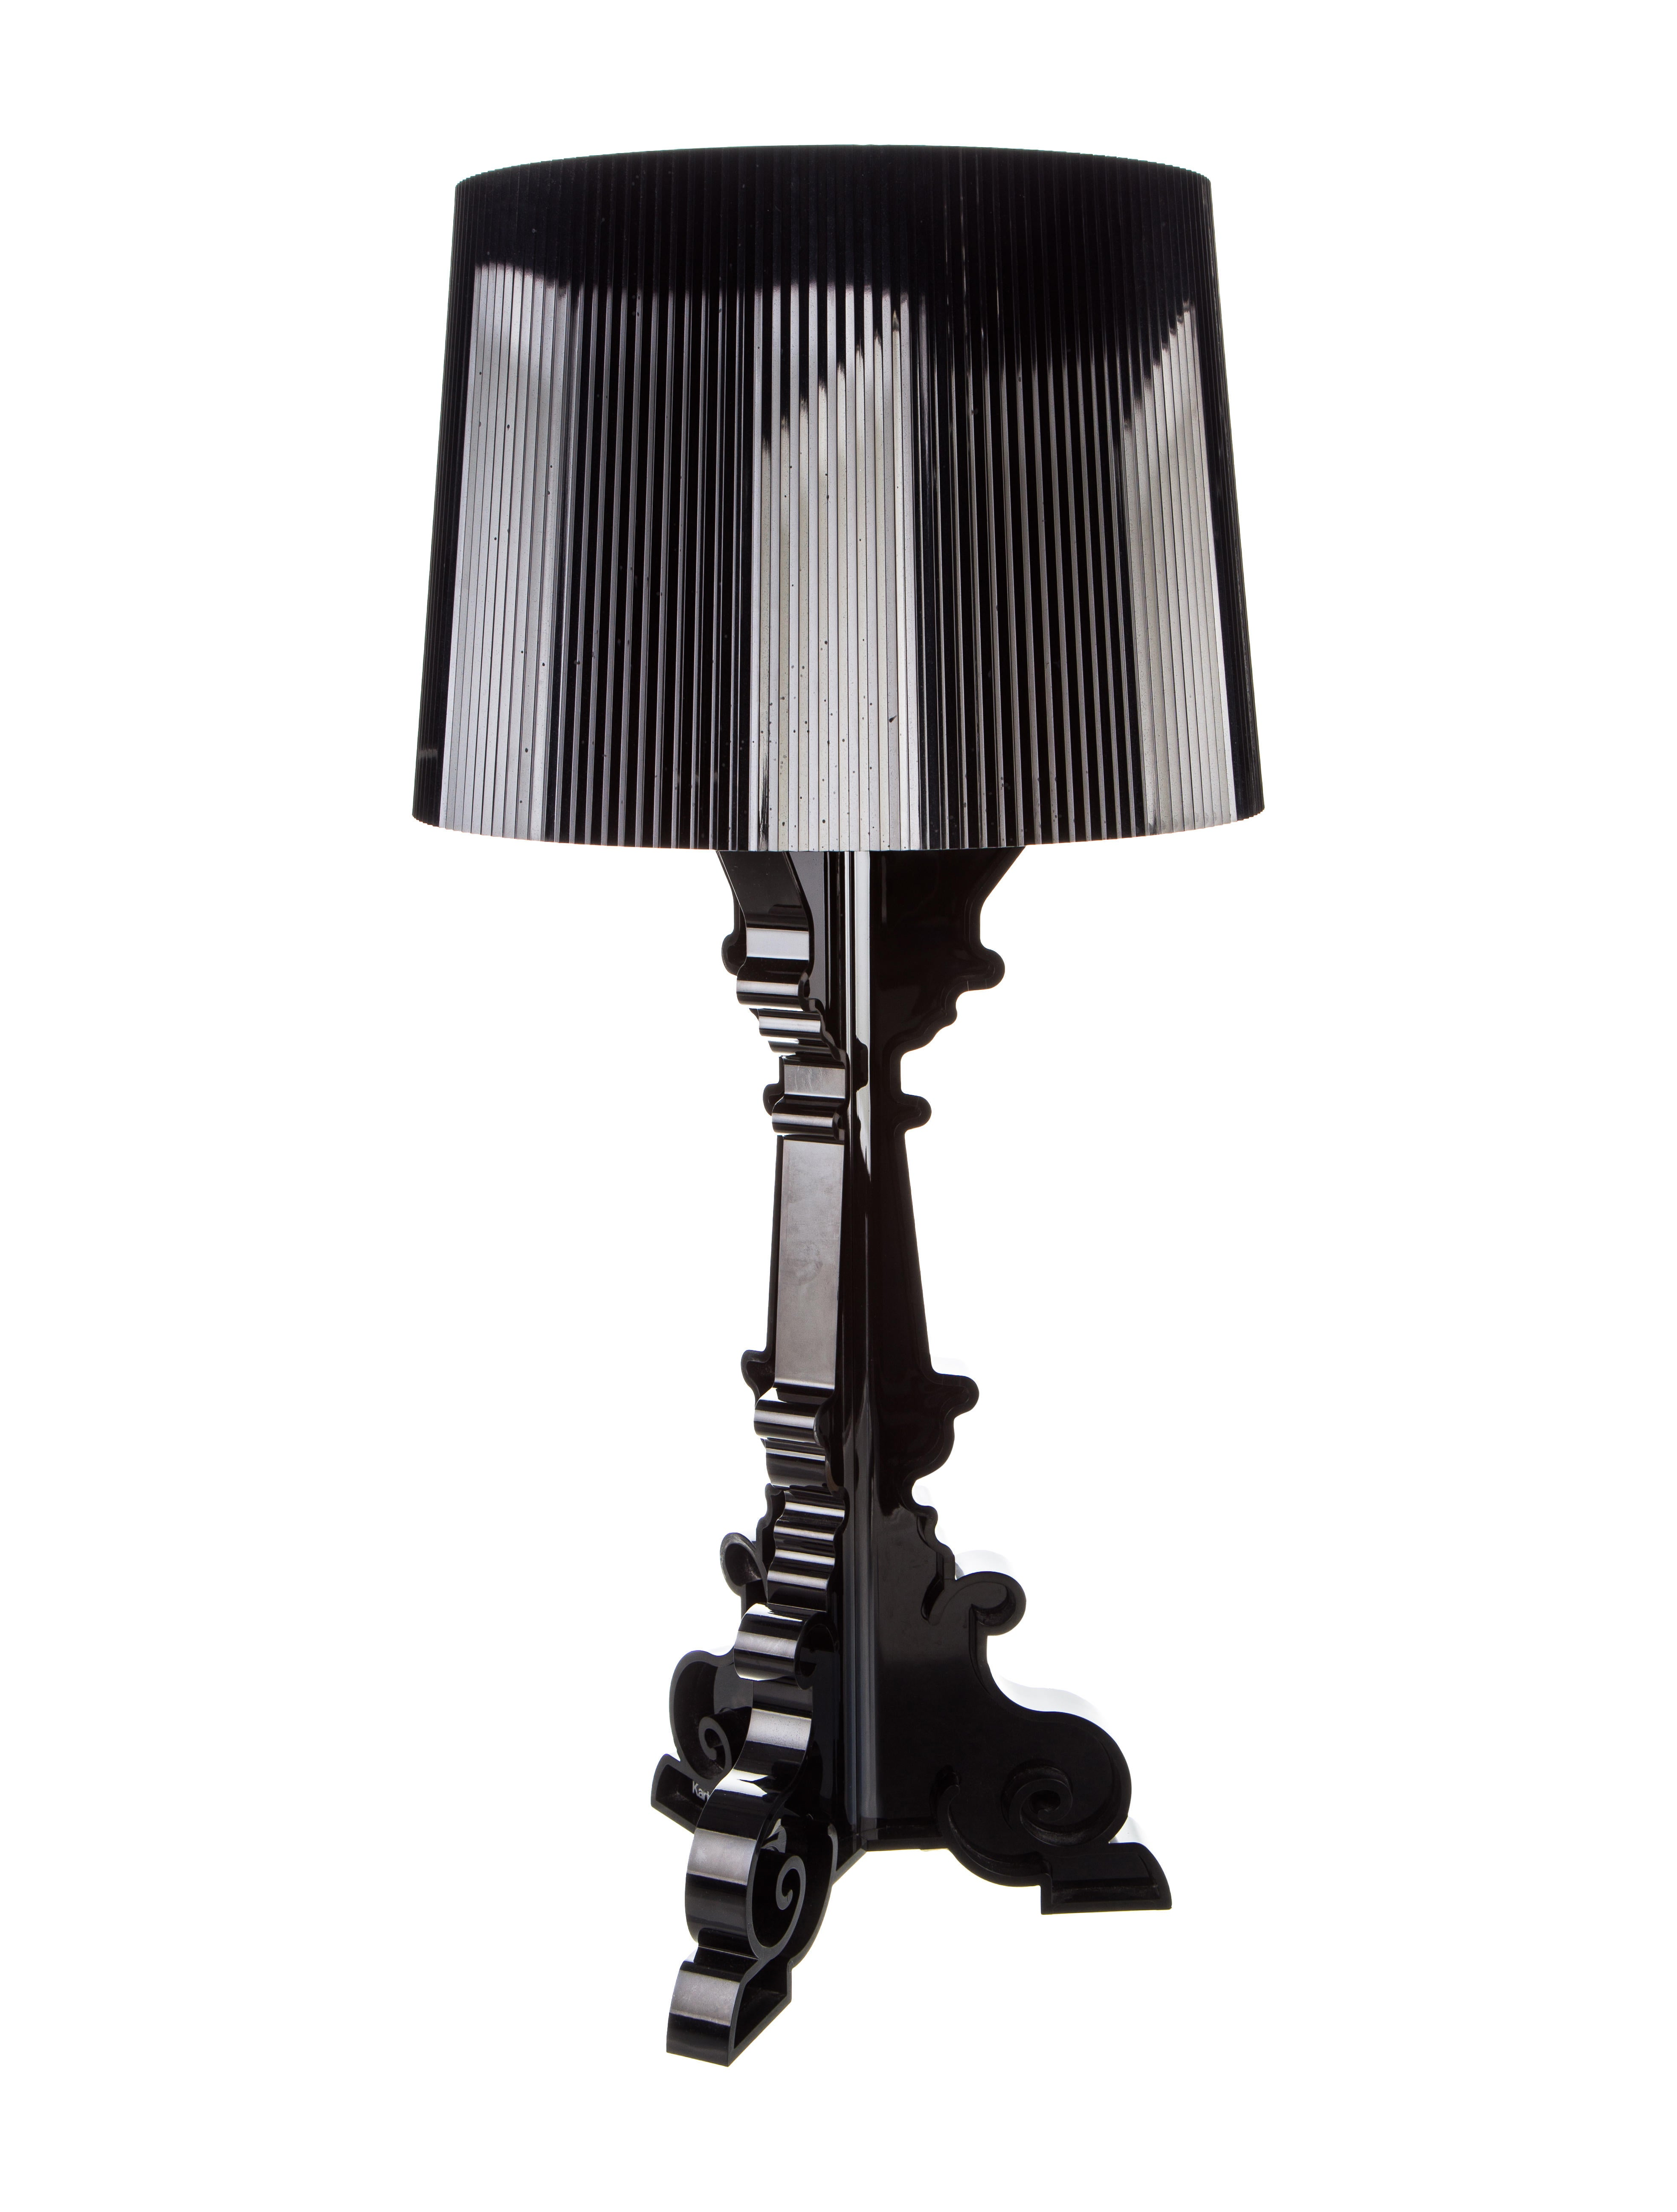 Kartell bourgie table lamp lighting ktl20127 the realreal bourgie table lamp geotapseo Choice Image